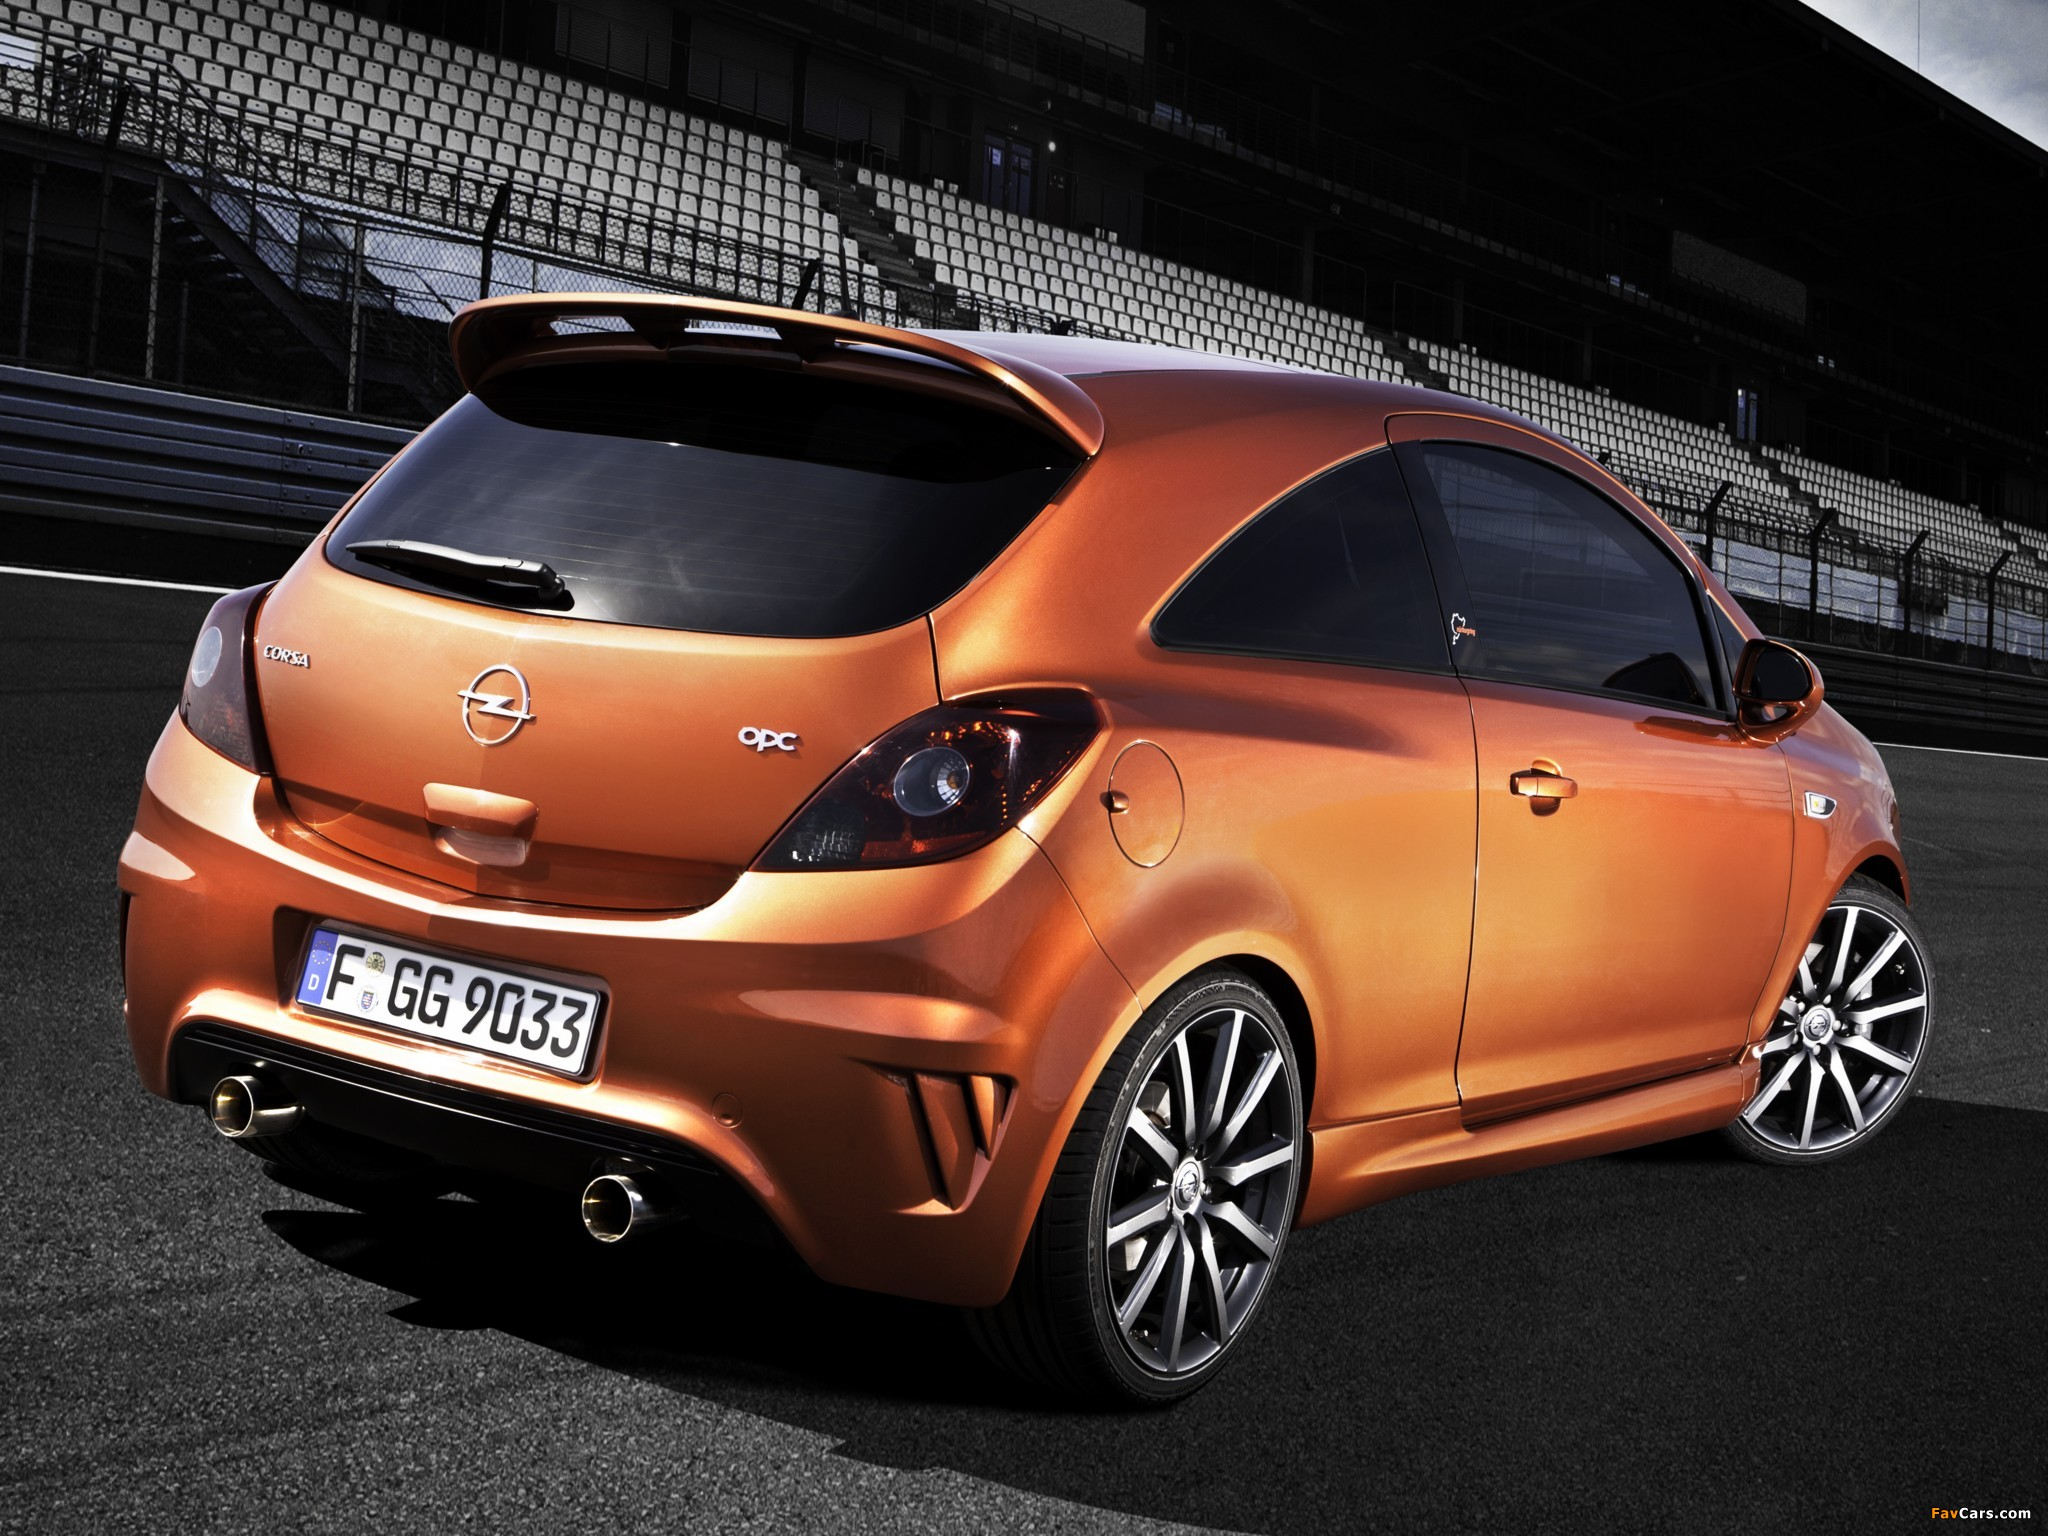 Opel Corsa OPC Nürburgring Edition (D) 2011 pictures (2048 x 1536)